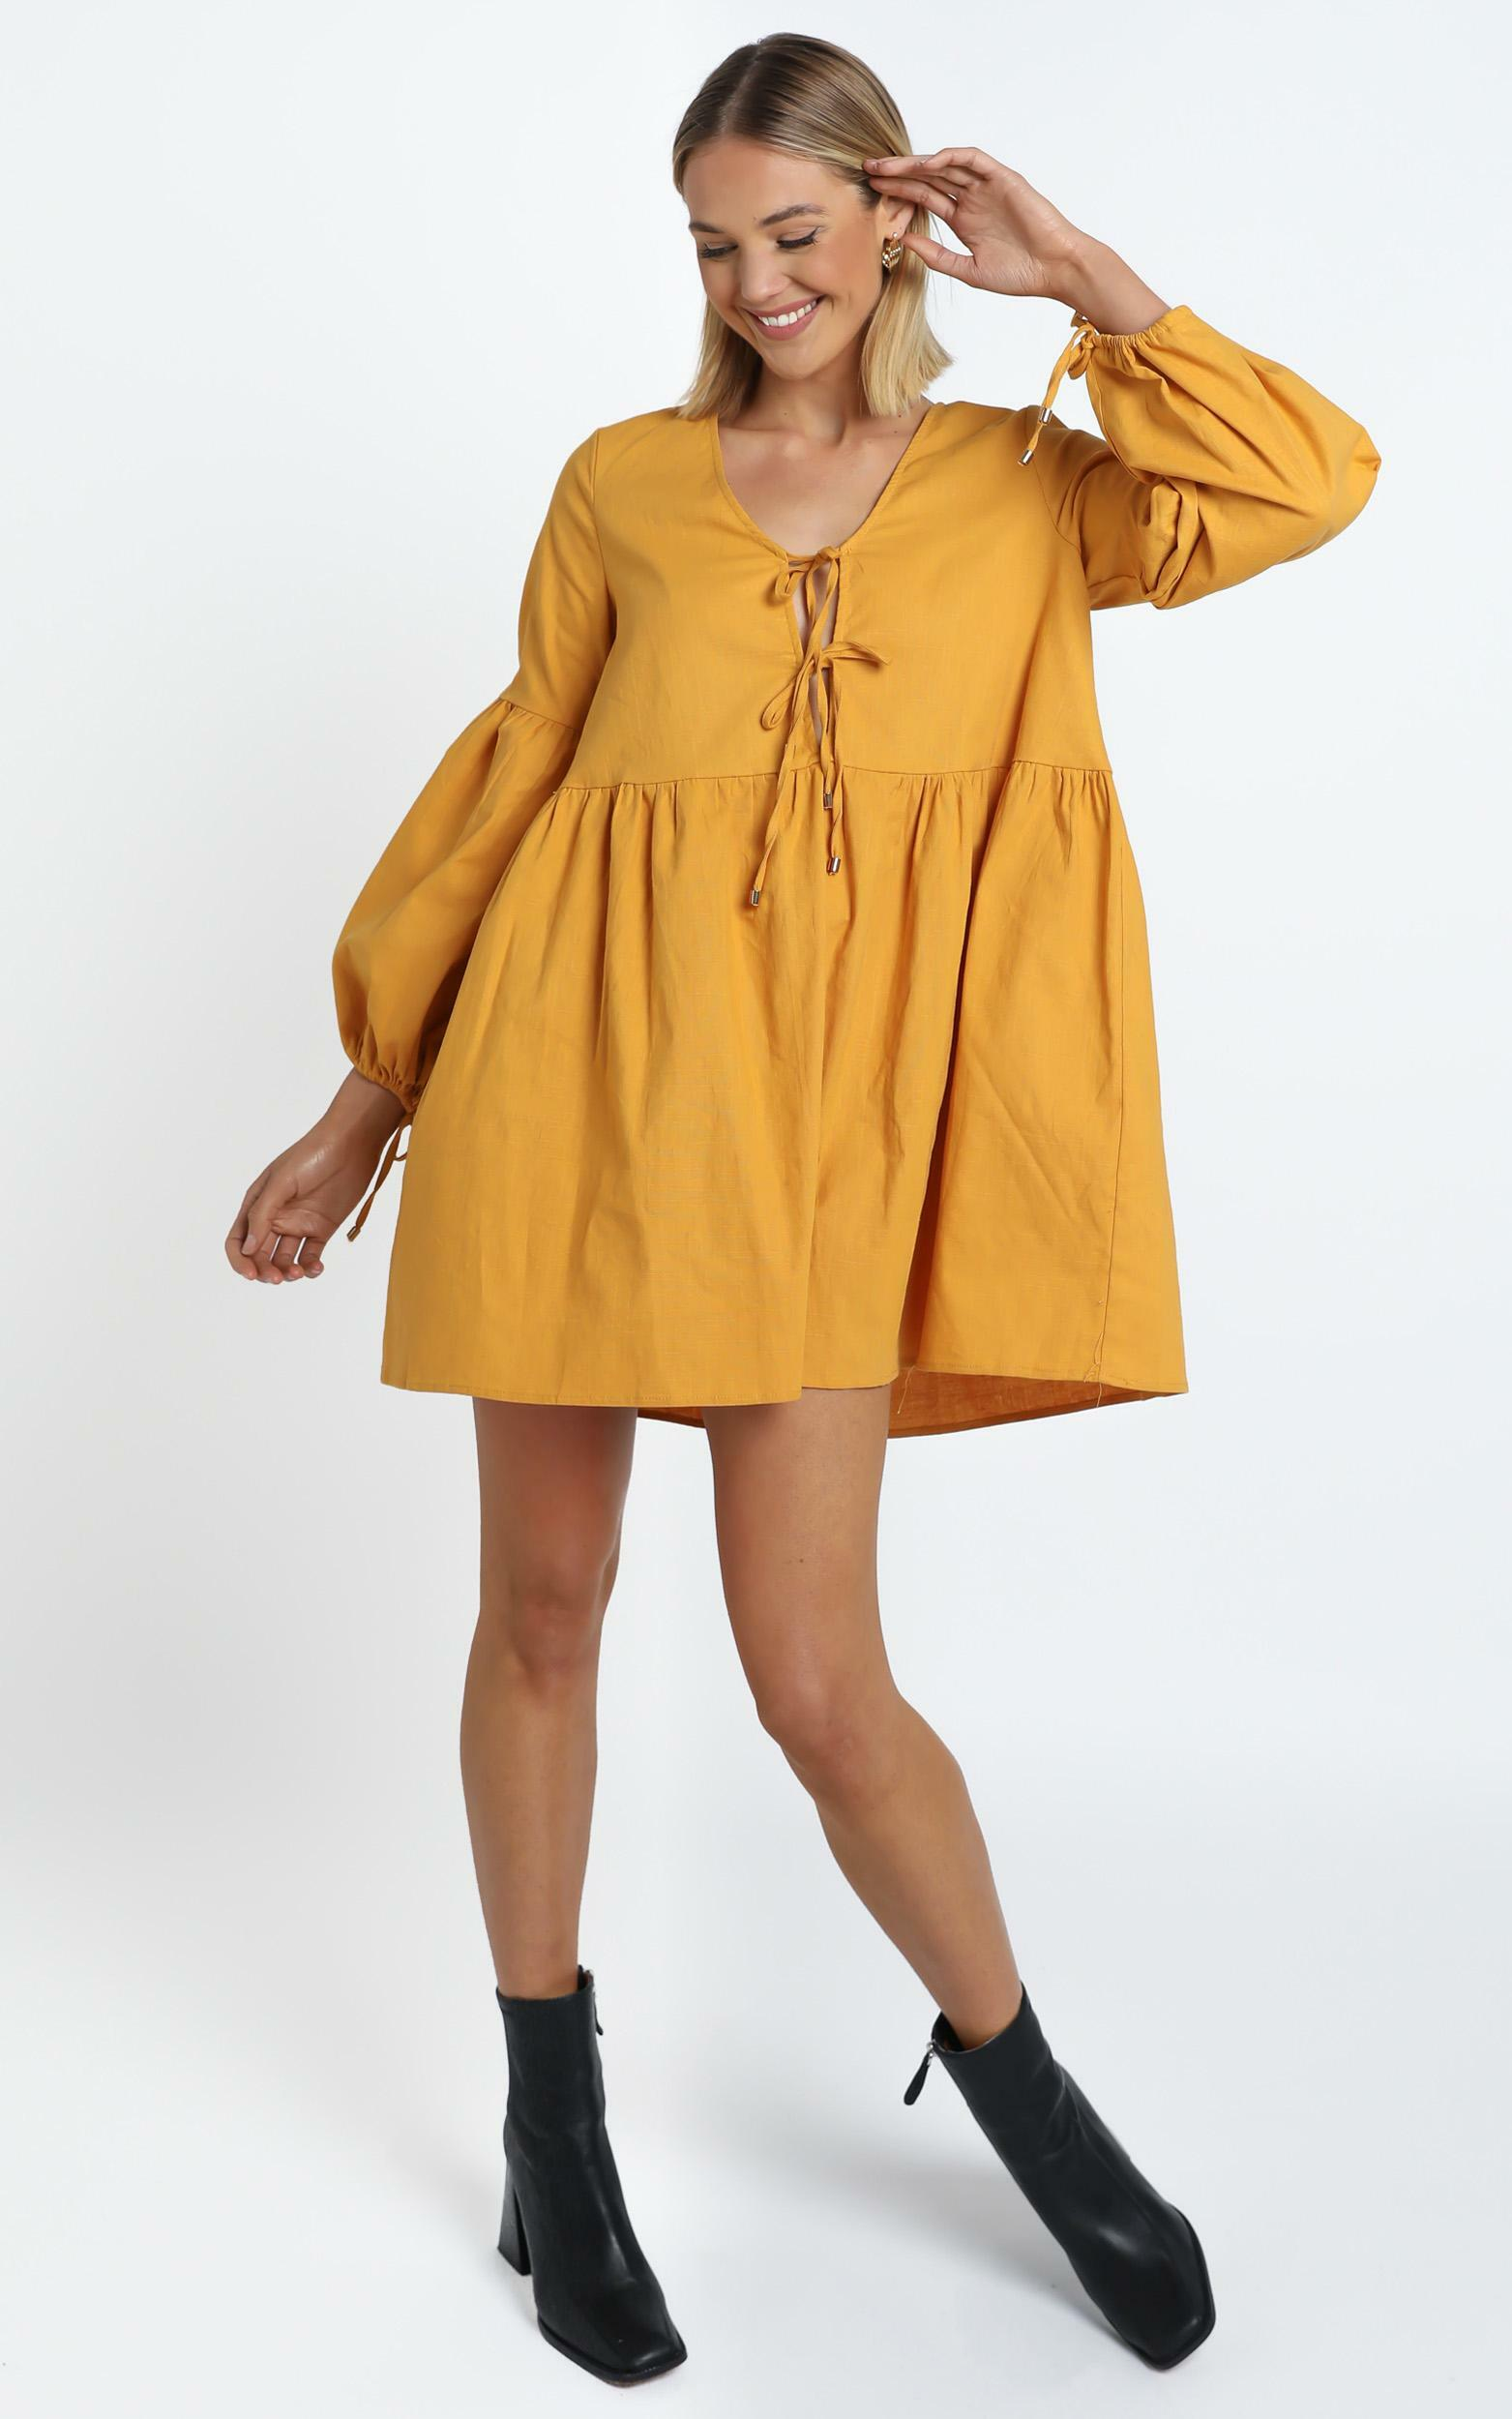 Zya The Label - Marigold Dress in Mustard - 14 (XL), YEL1, hi-res image number null